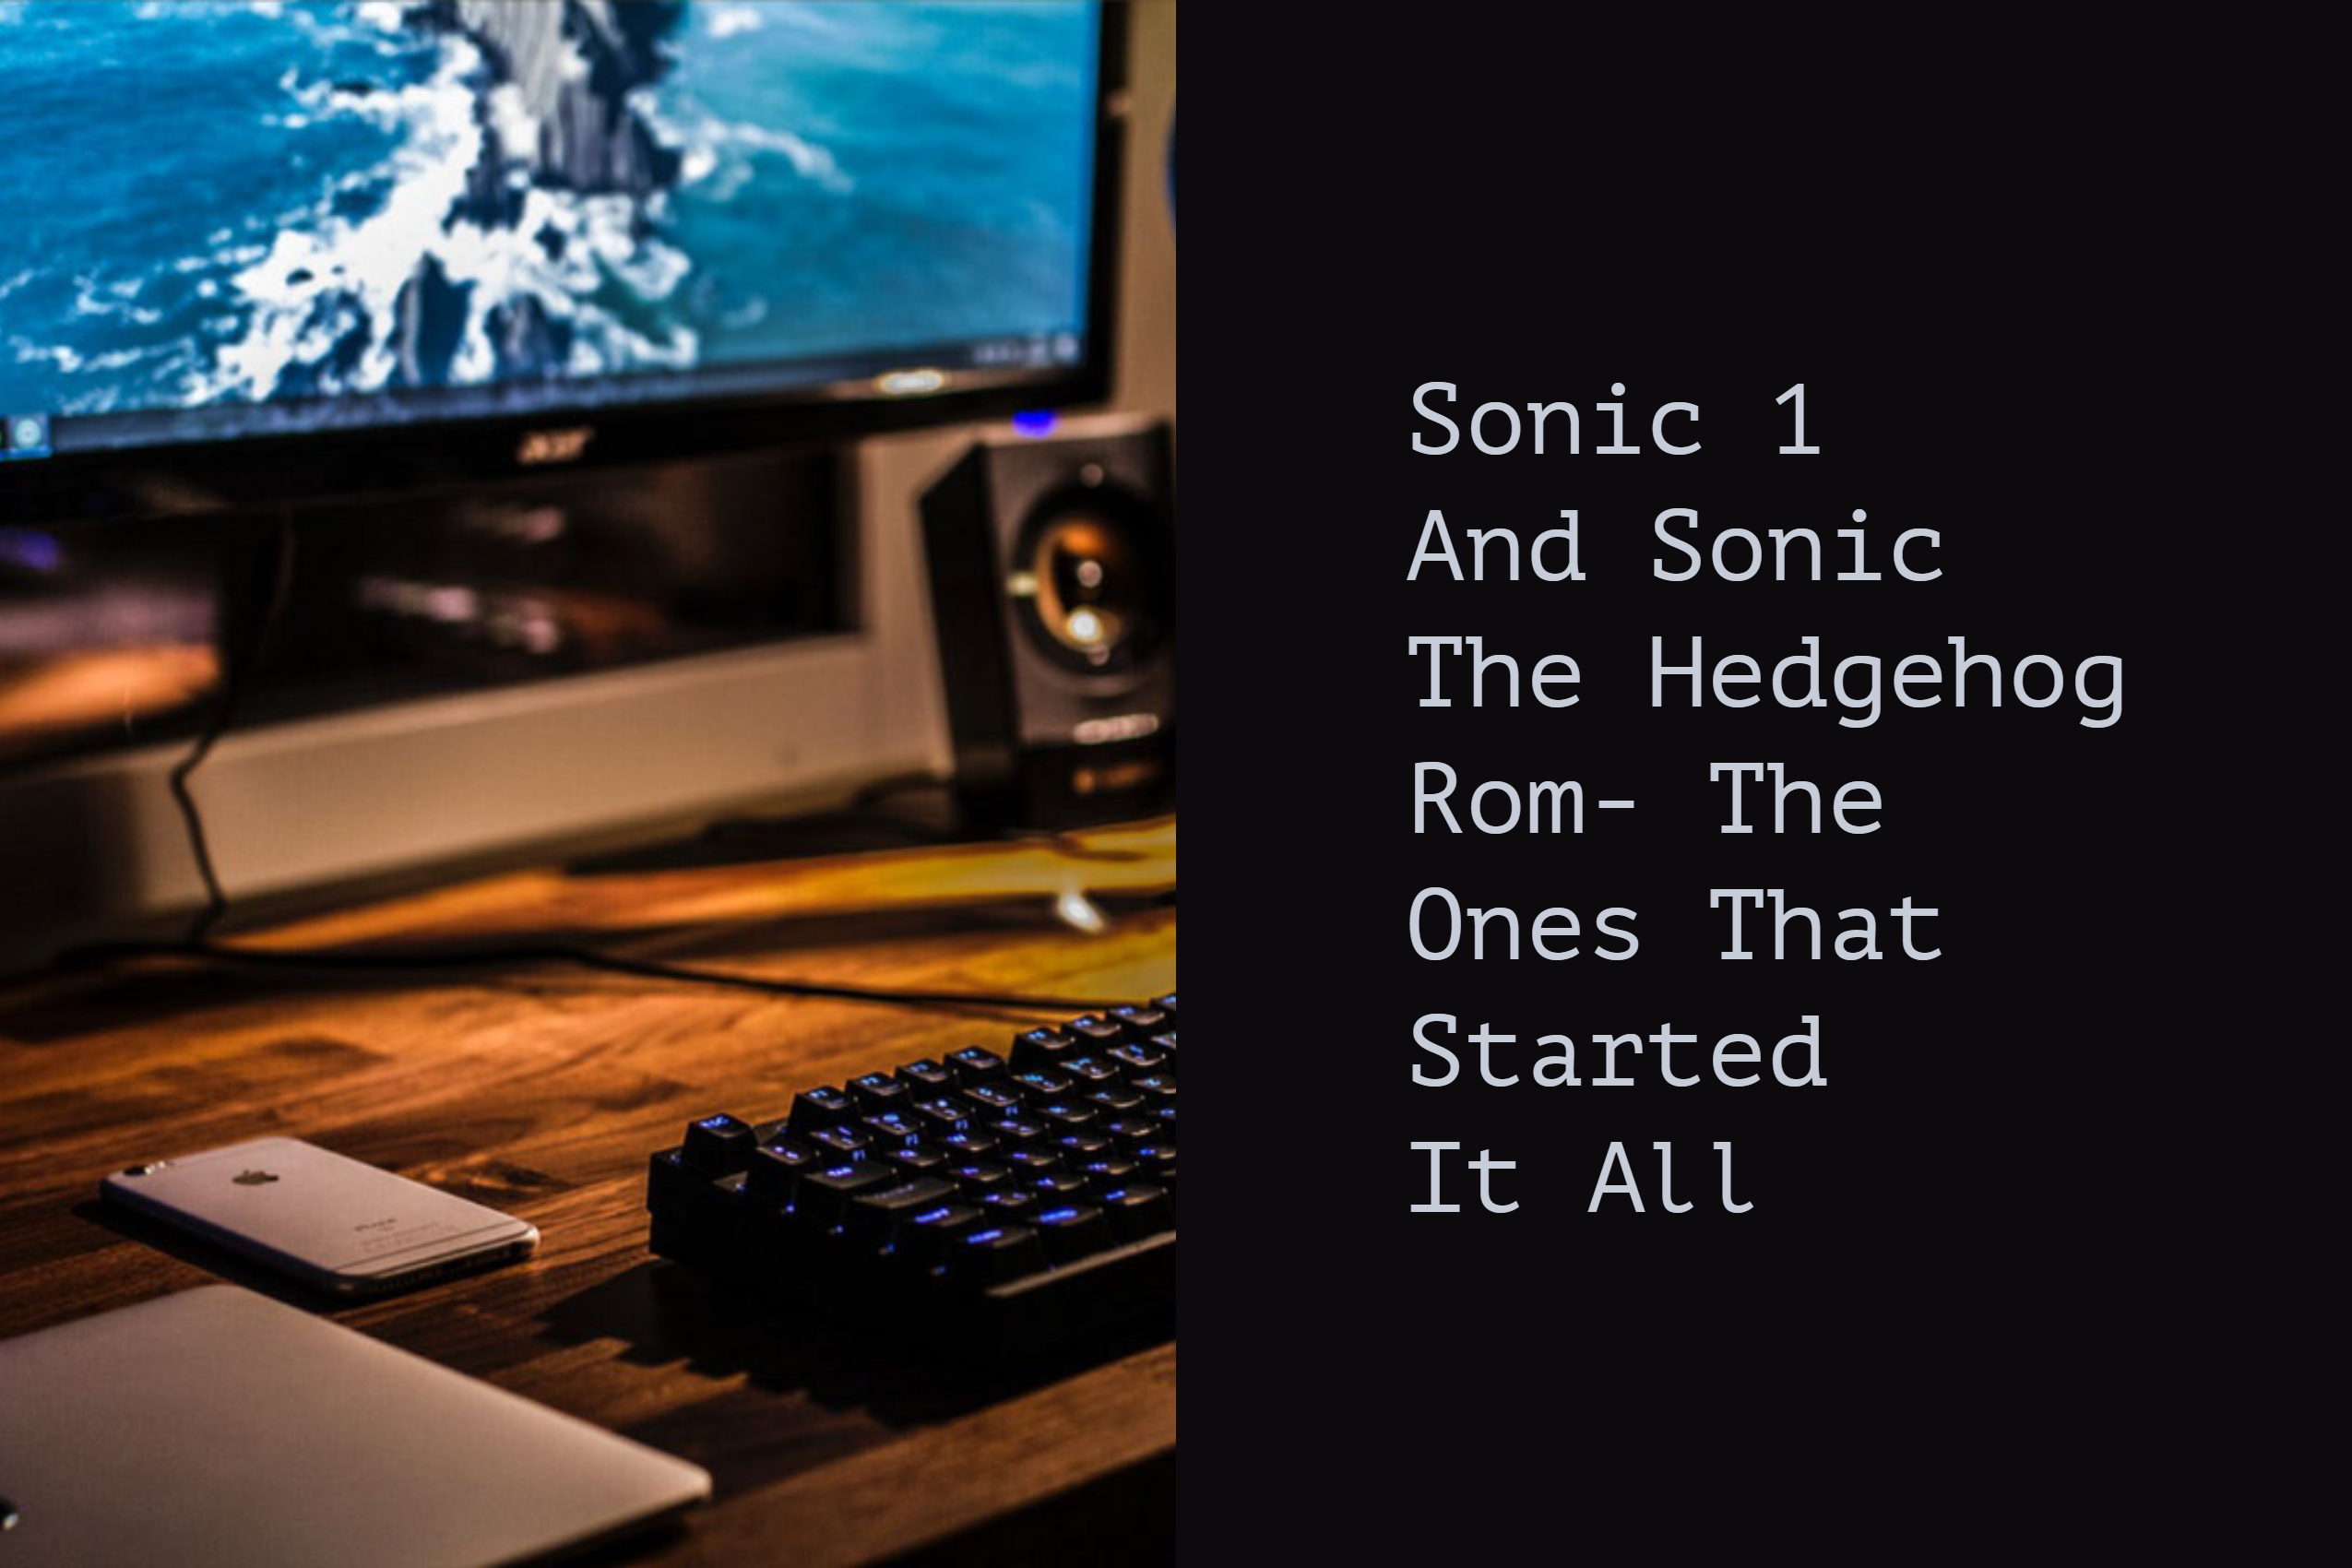 Sonic 1 And Sonic The Hedgehog Rom The Ones That Started It All Sonic Dr